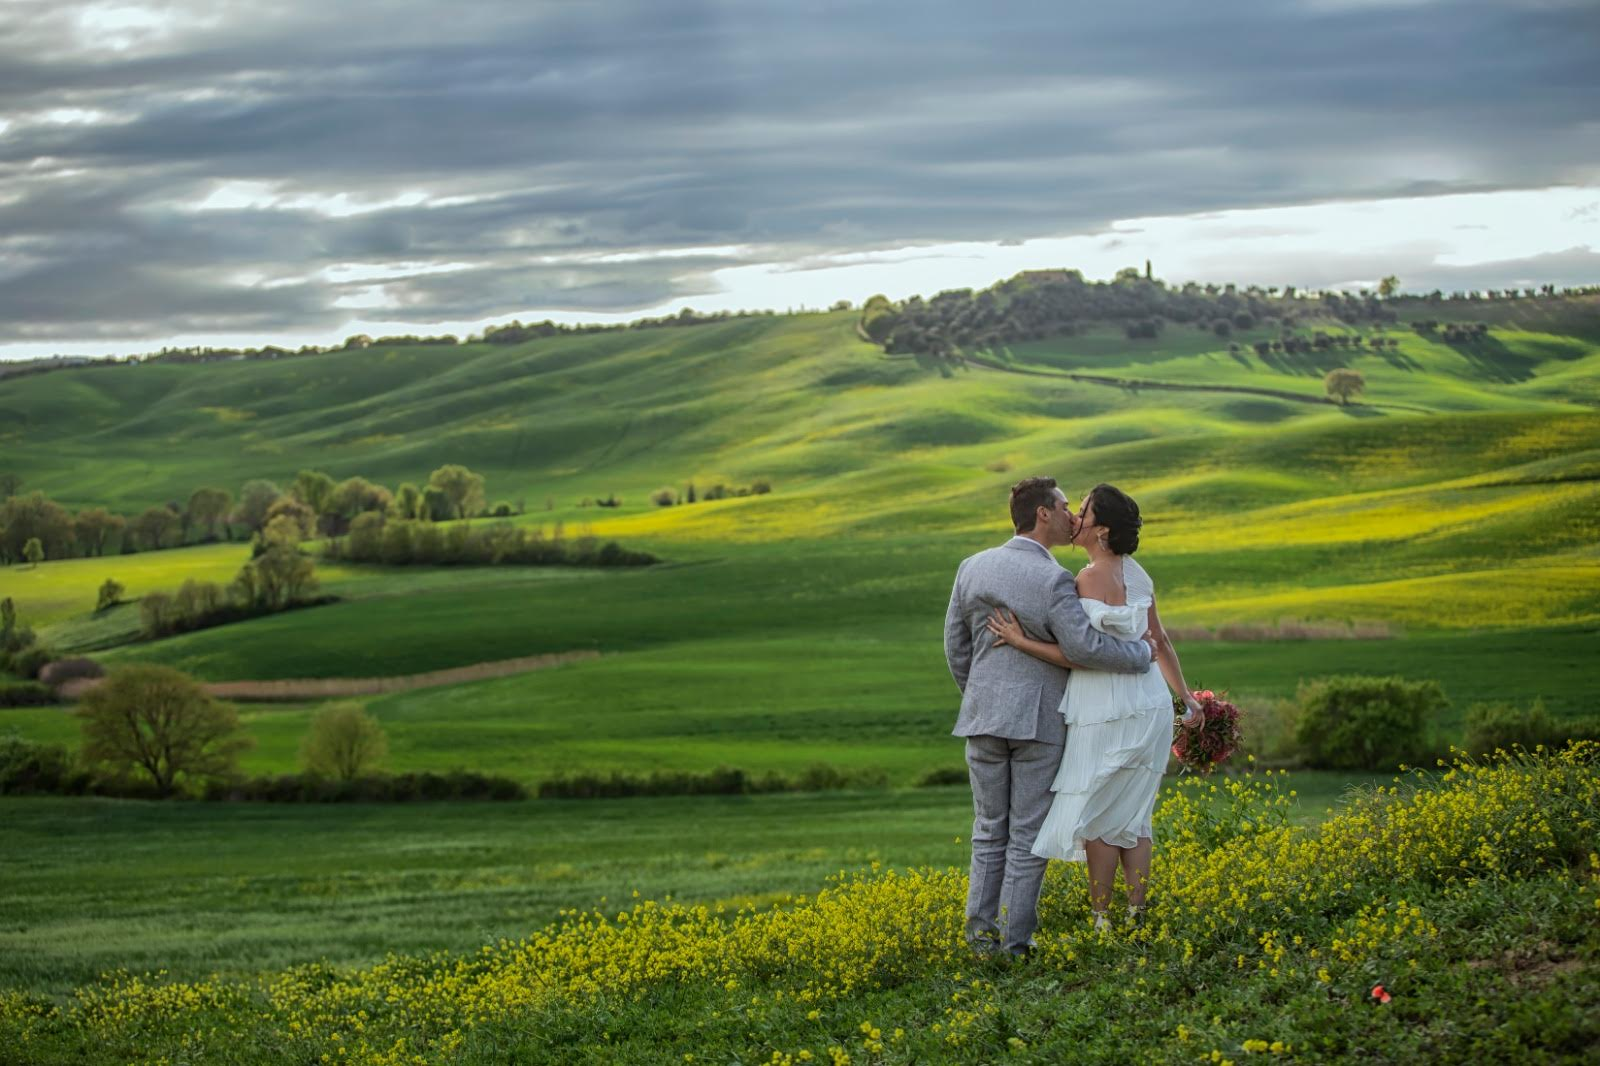 Colleen & Riley - Elopement in Val d'Orcia 28th April 2019